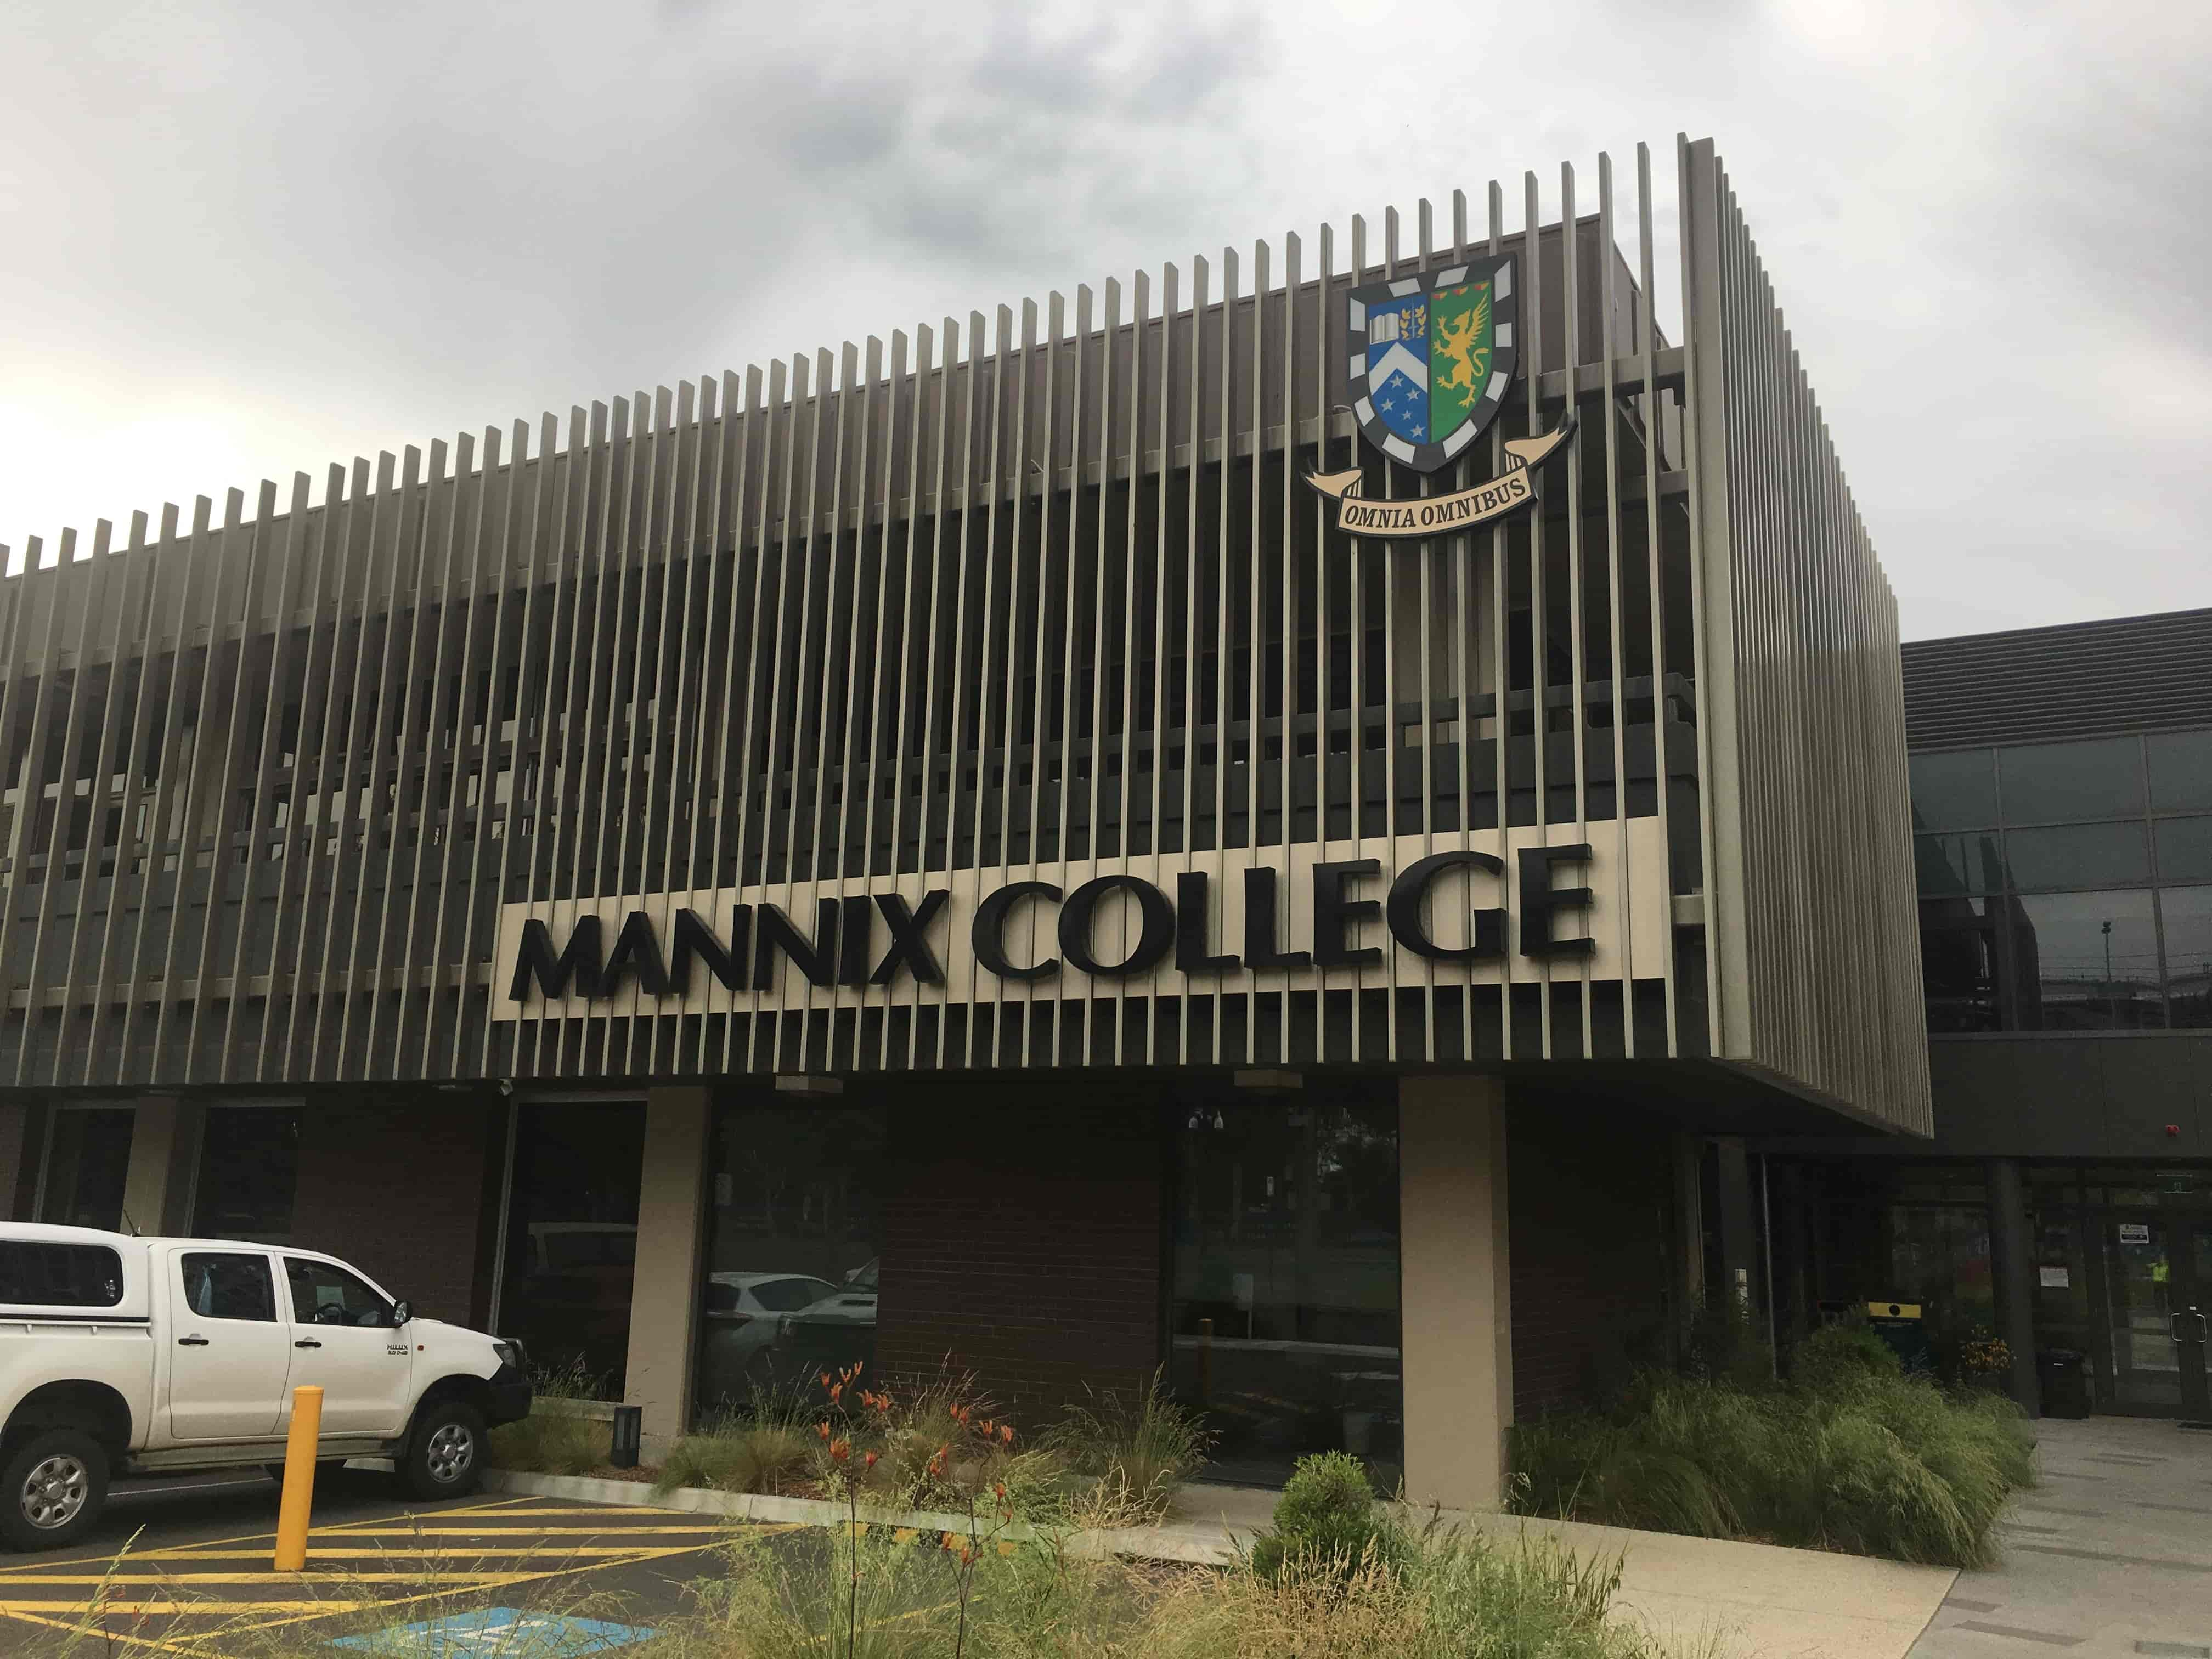 3D Fabricated lettering Digital Printing Melbourne jag signs Mannix college